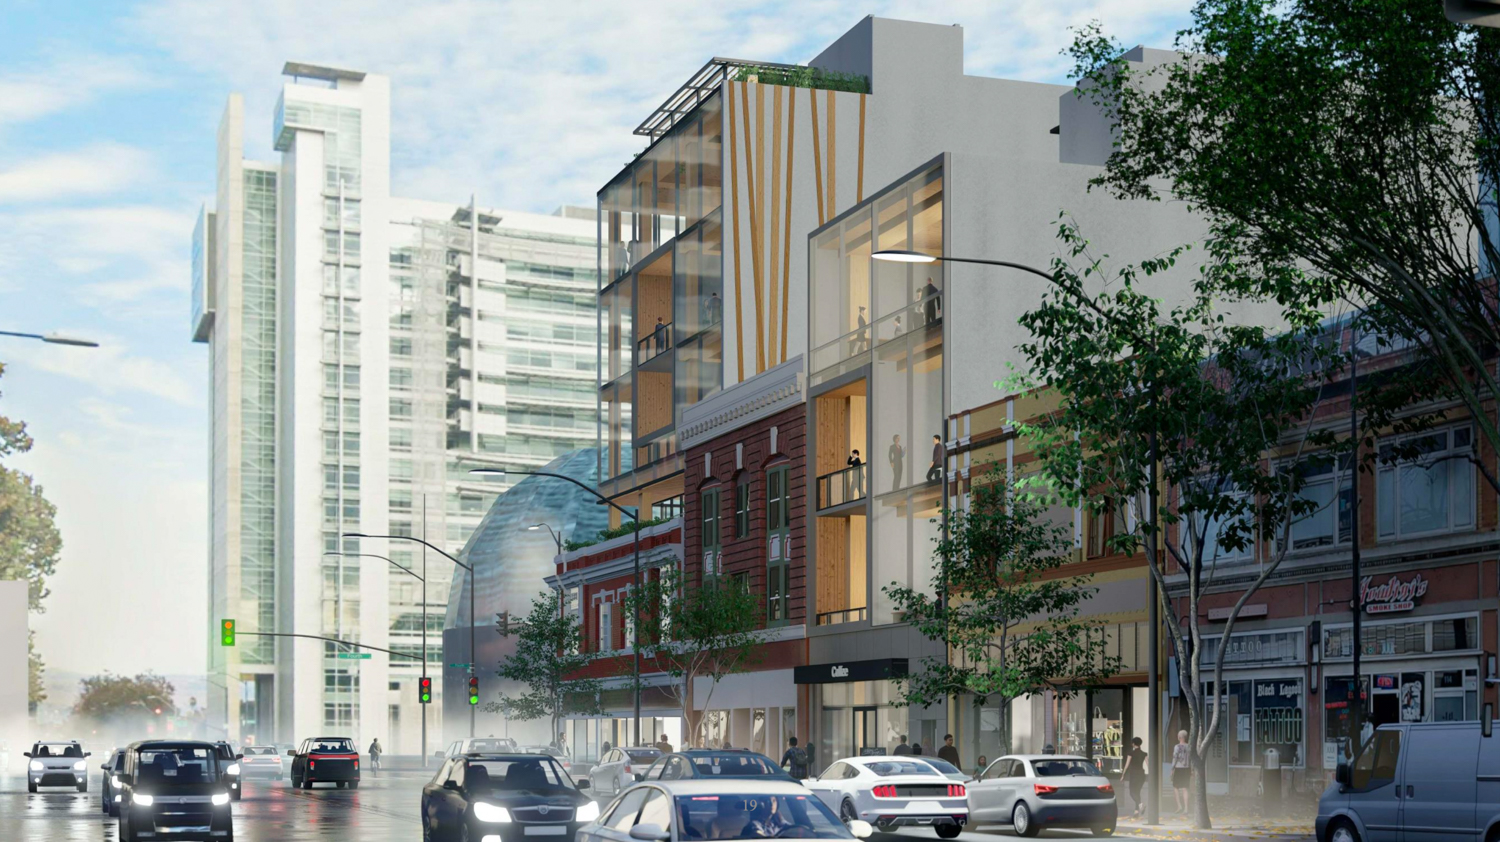 17 South Fourth Street with City Hall in the background, rendering courtesy Bayview Development Group